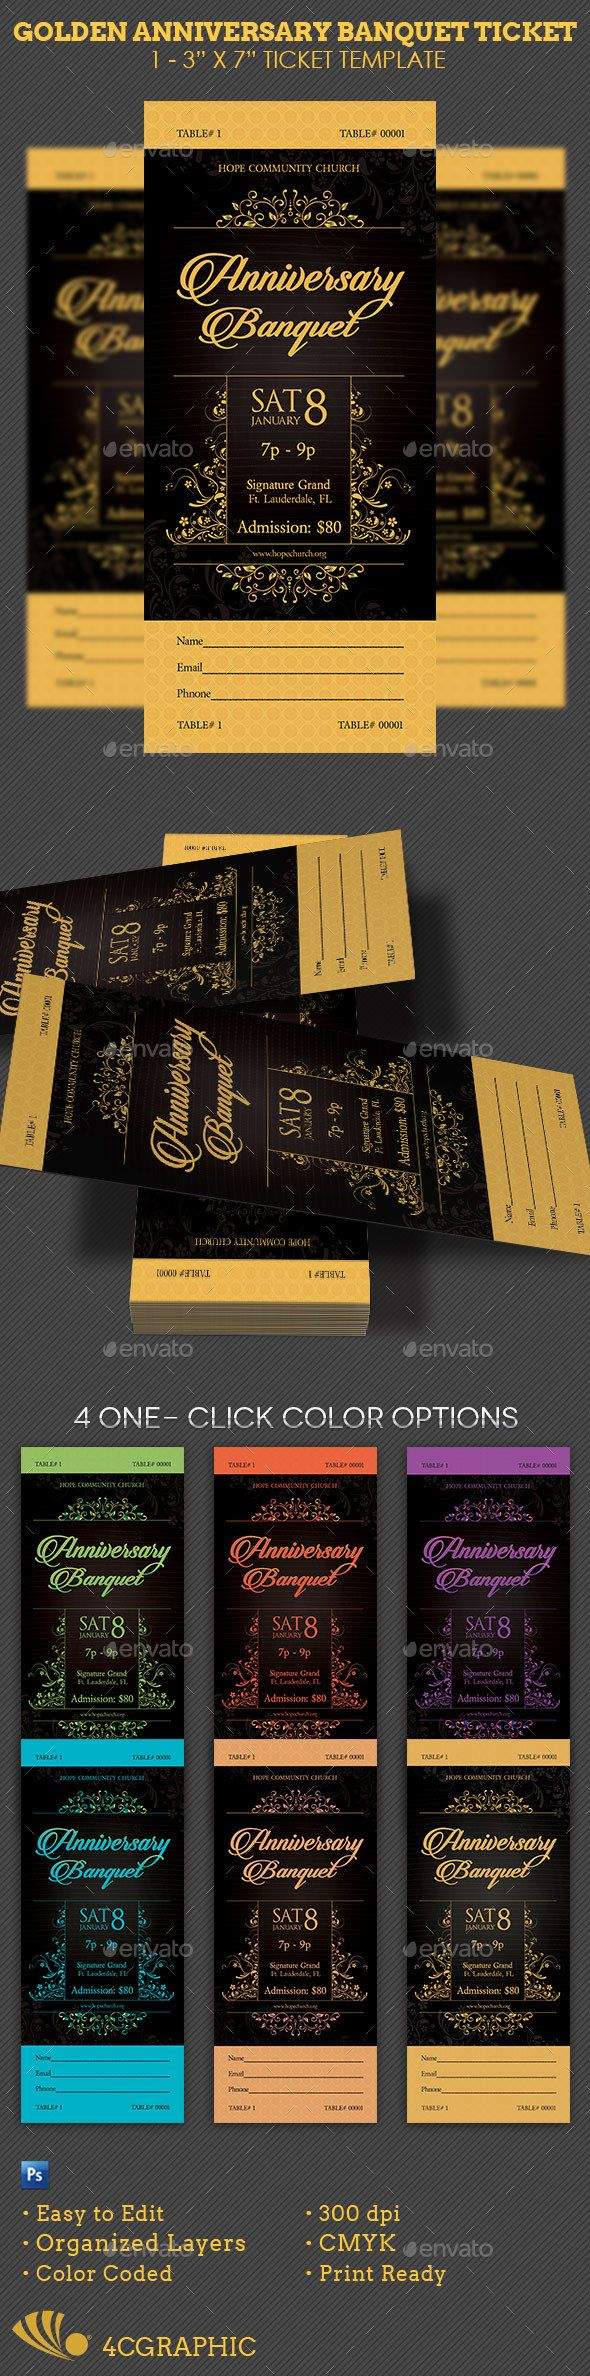 Golden Anniversary Banquet Ticket Template — Photoshop PSD #birthday #tea • Available here → https://graphicriver.net/item/golden-anniversary-banquet-ticket-template/16928326?ref=pxcr